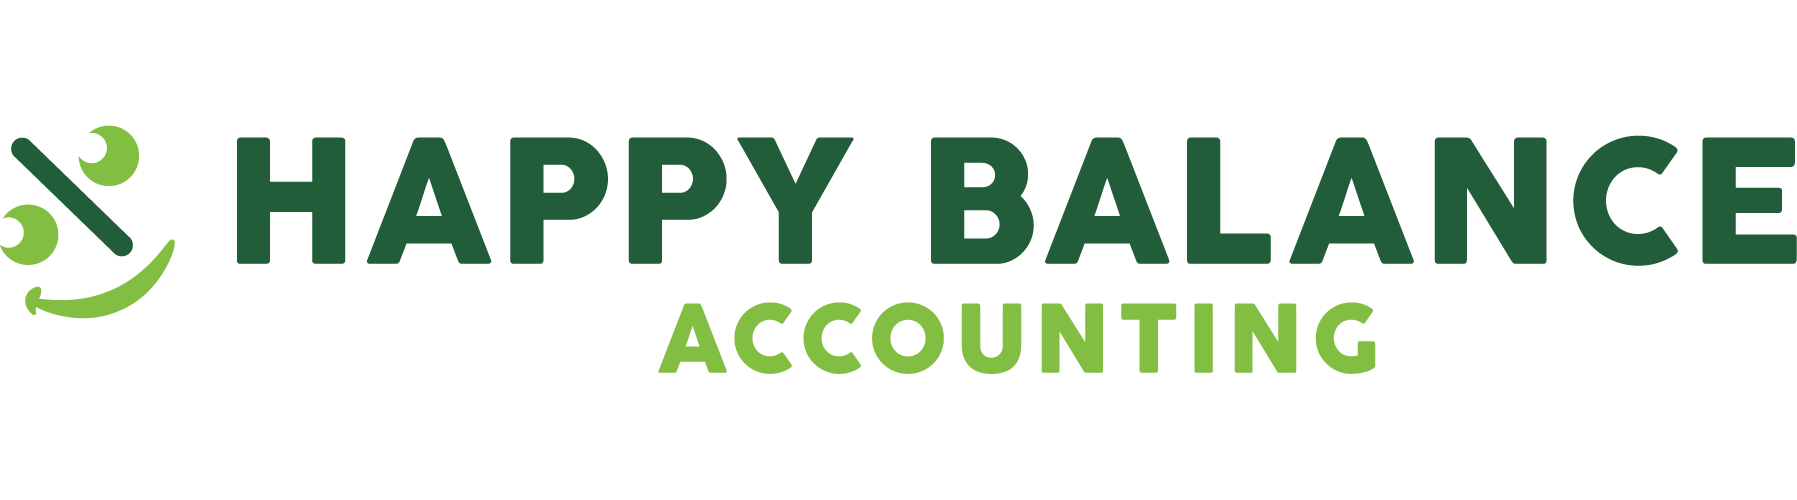 Happy Balance Accounting Logo | City of Vergas Business Directory